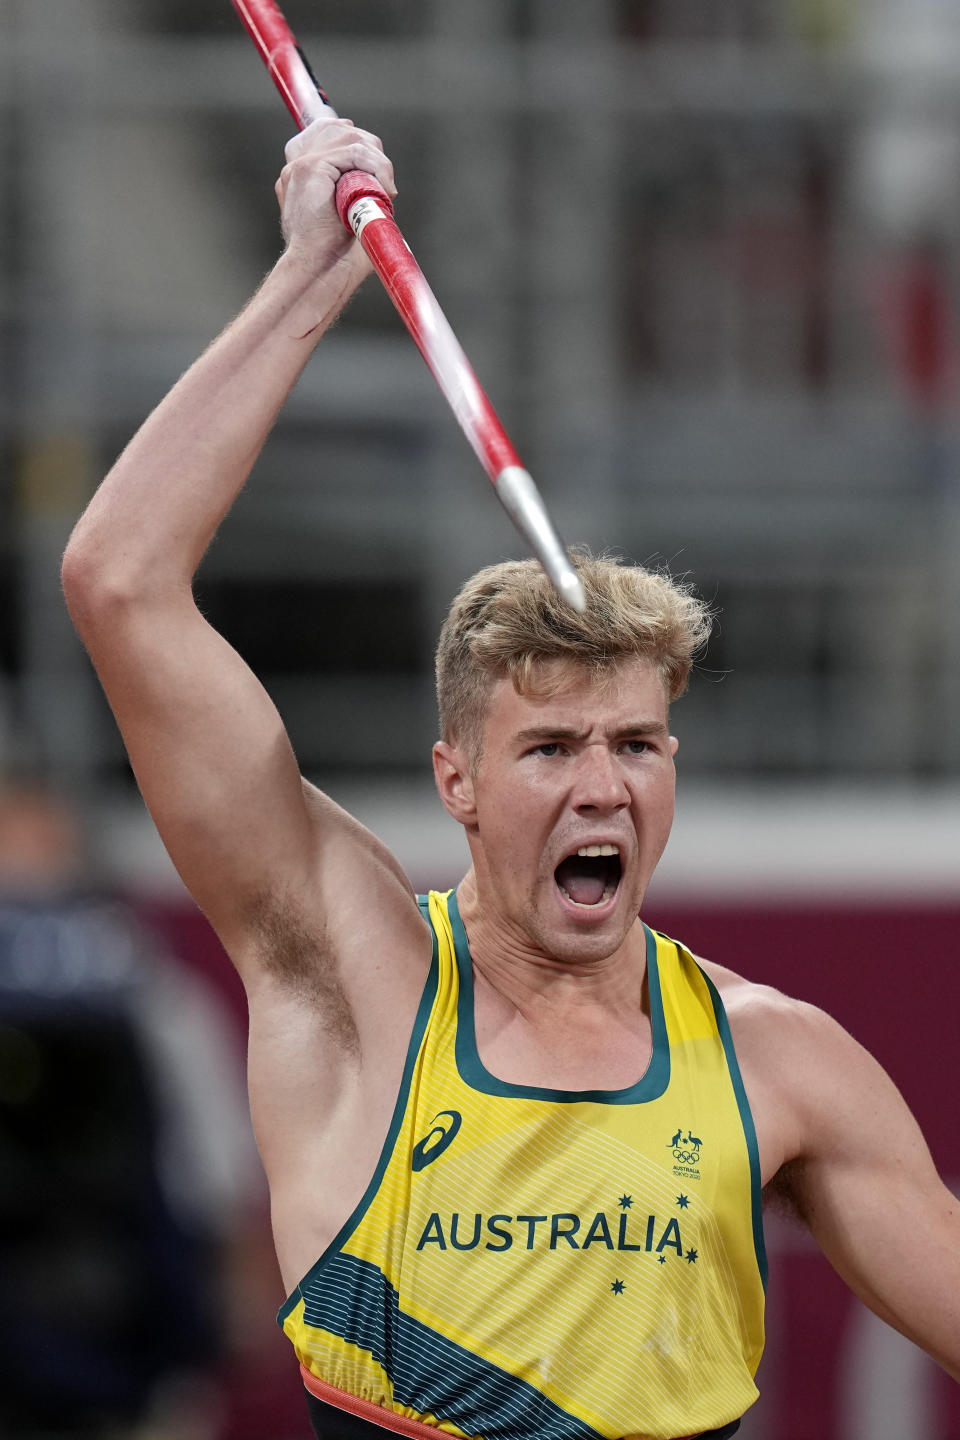 Ashley Moloney, of Australia, competes in the decathlon javelin throw at the 2020 Summer Olympics, Thursday, Aug. 5, 2021, in Tokyo. (AP Photo/David J. Phillip)